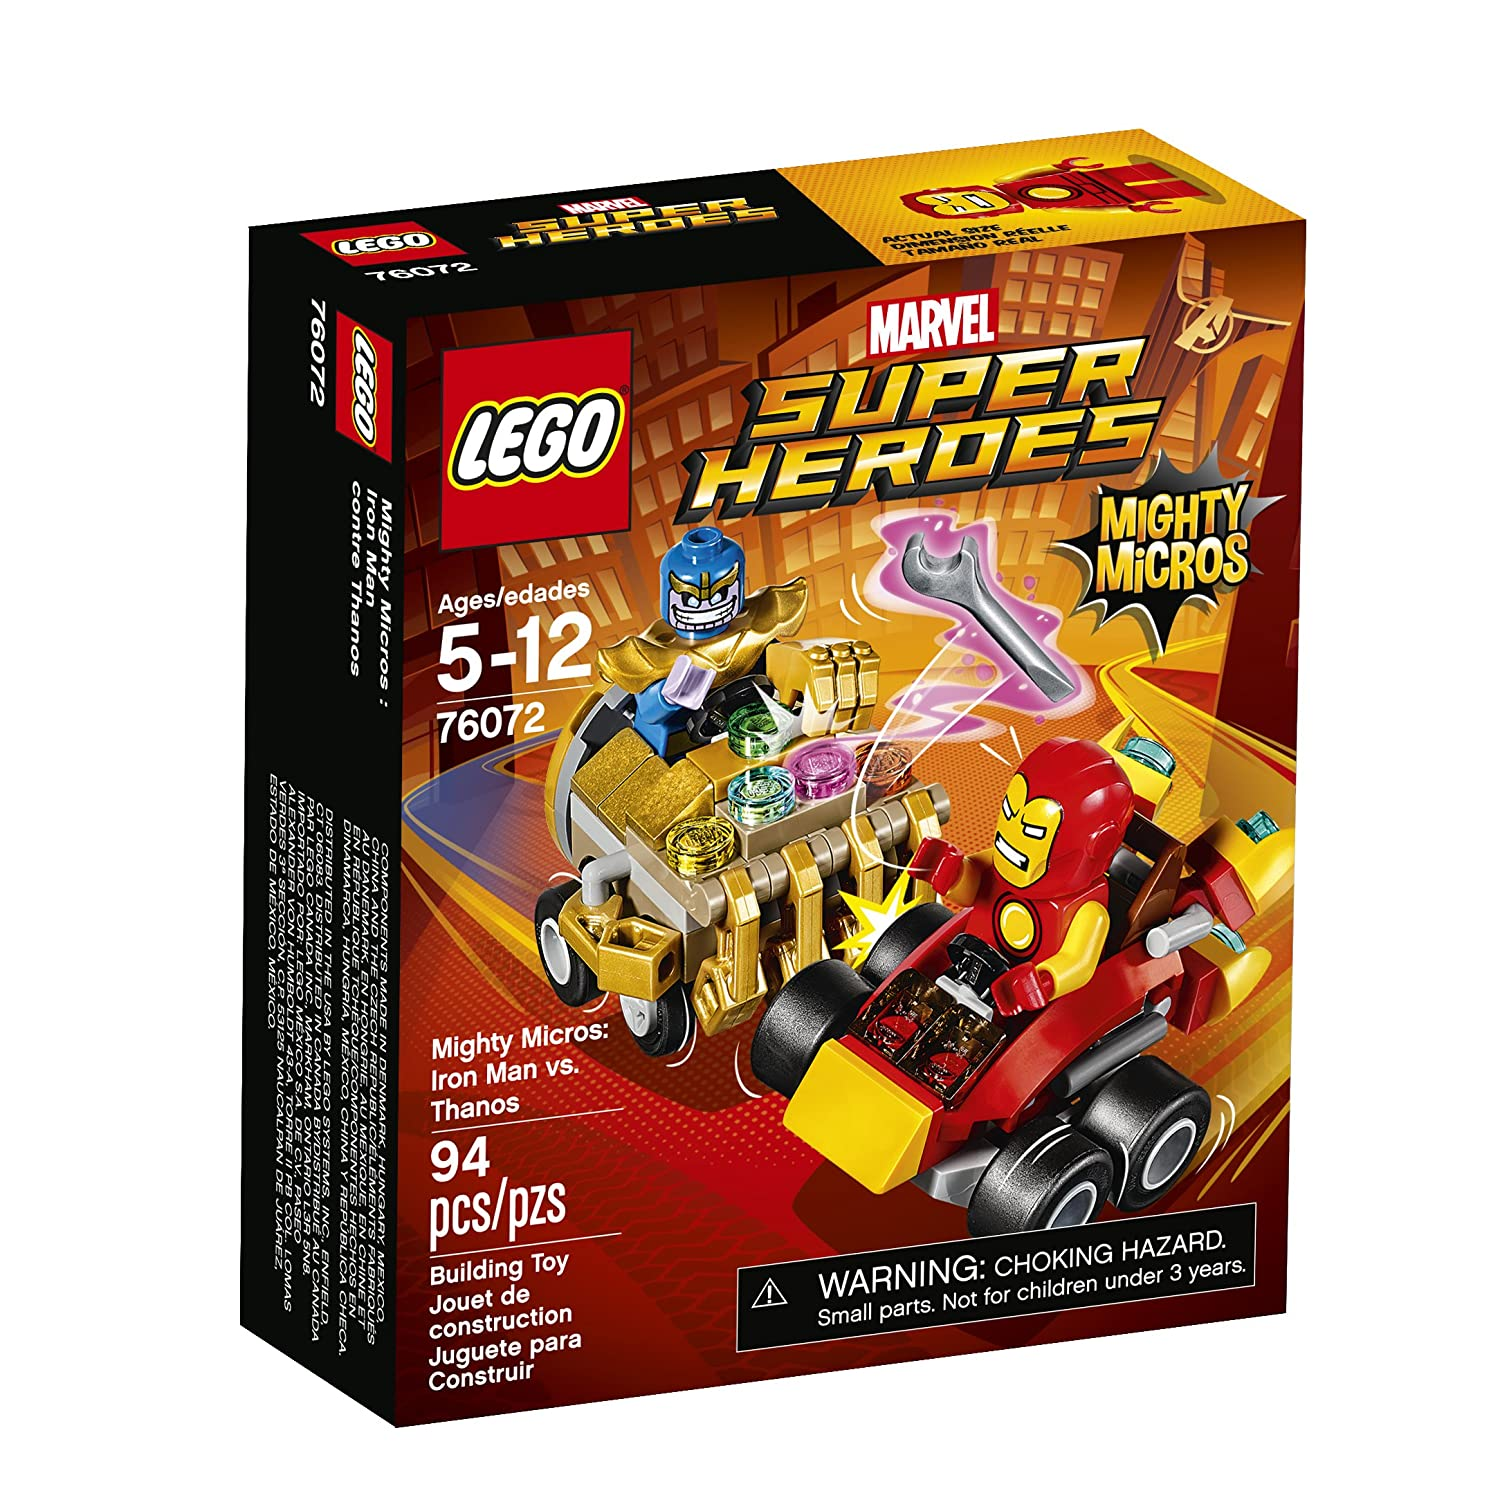 LEGO Super Heroes Mighty Micros: Iron Man Vs. Thanos